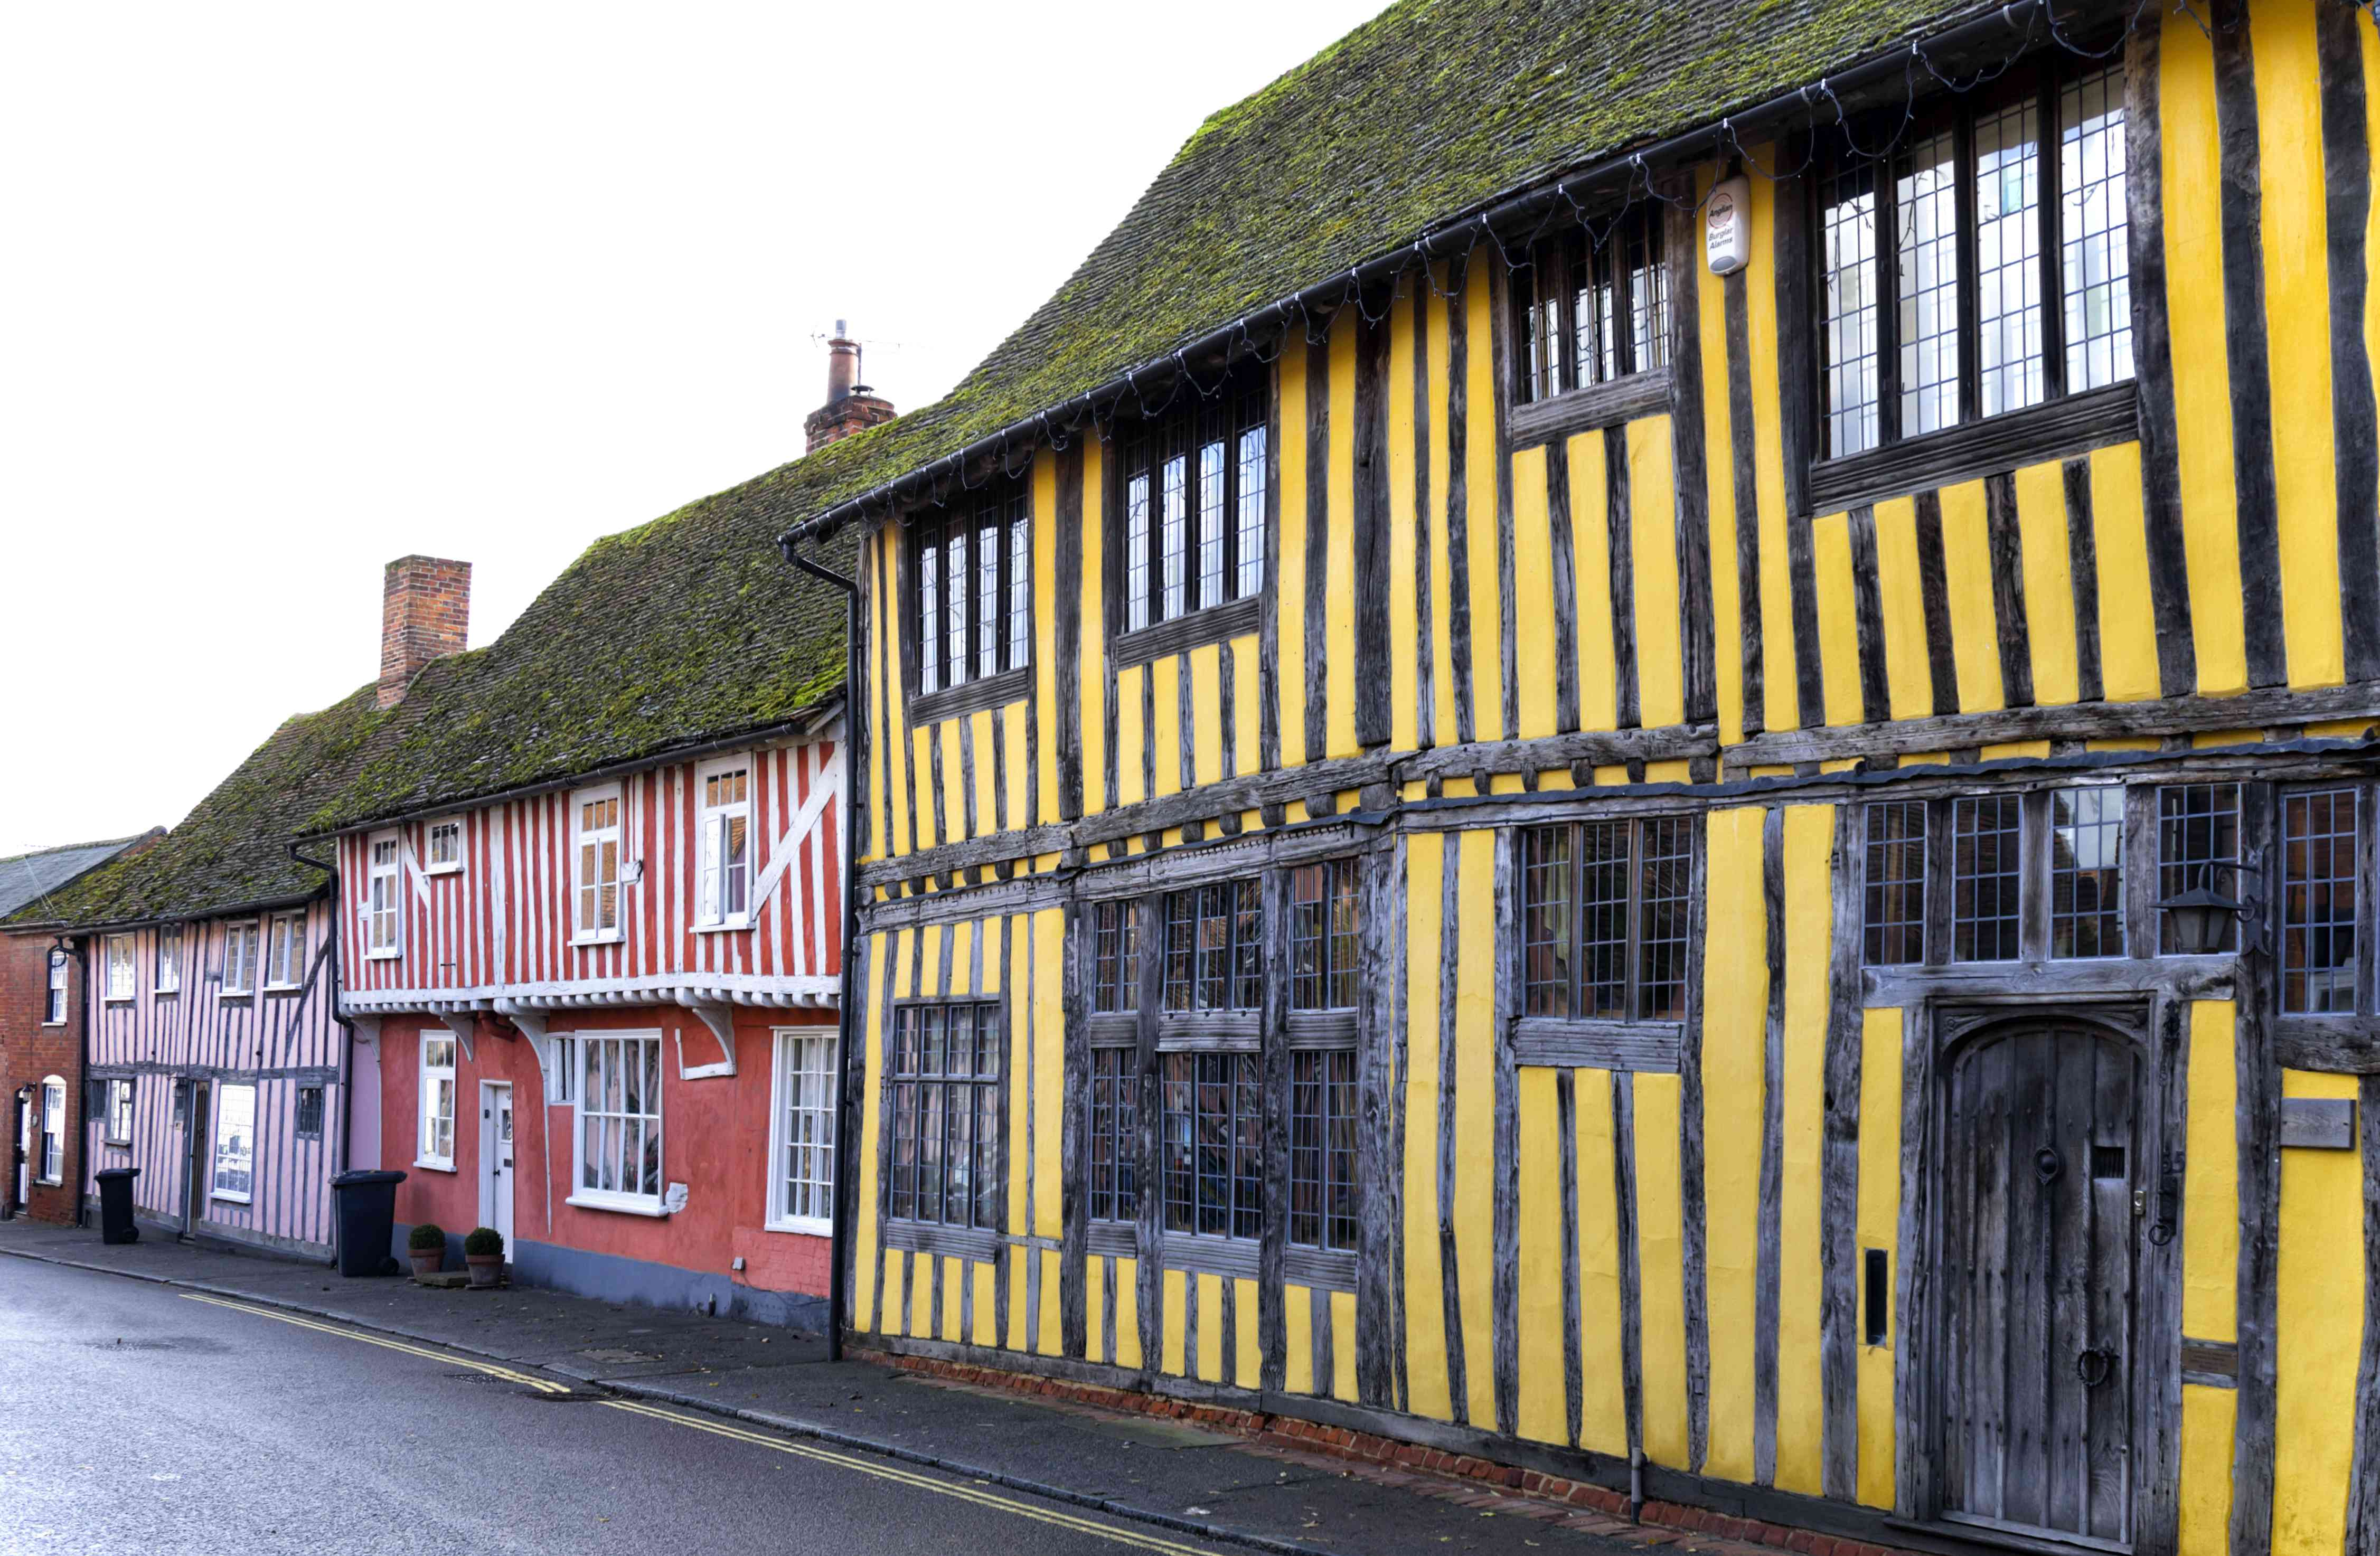 Colourful old houses in Lavenham